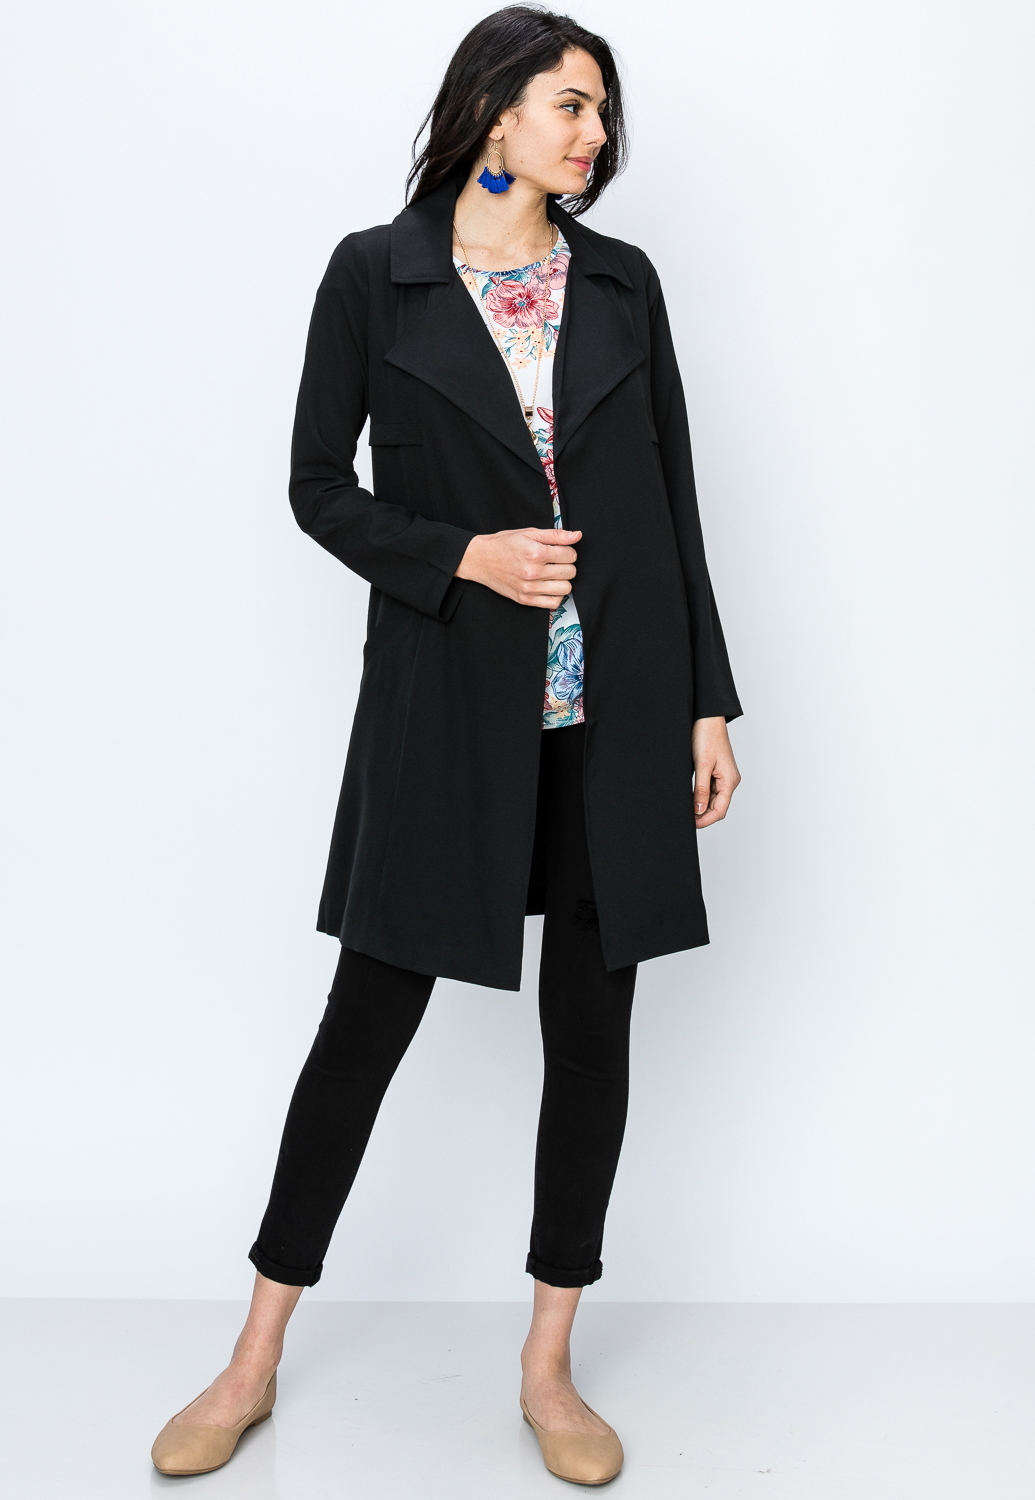 Self Tie Dressy Jacket